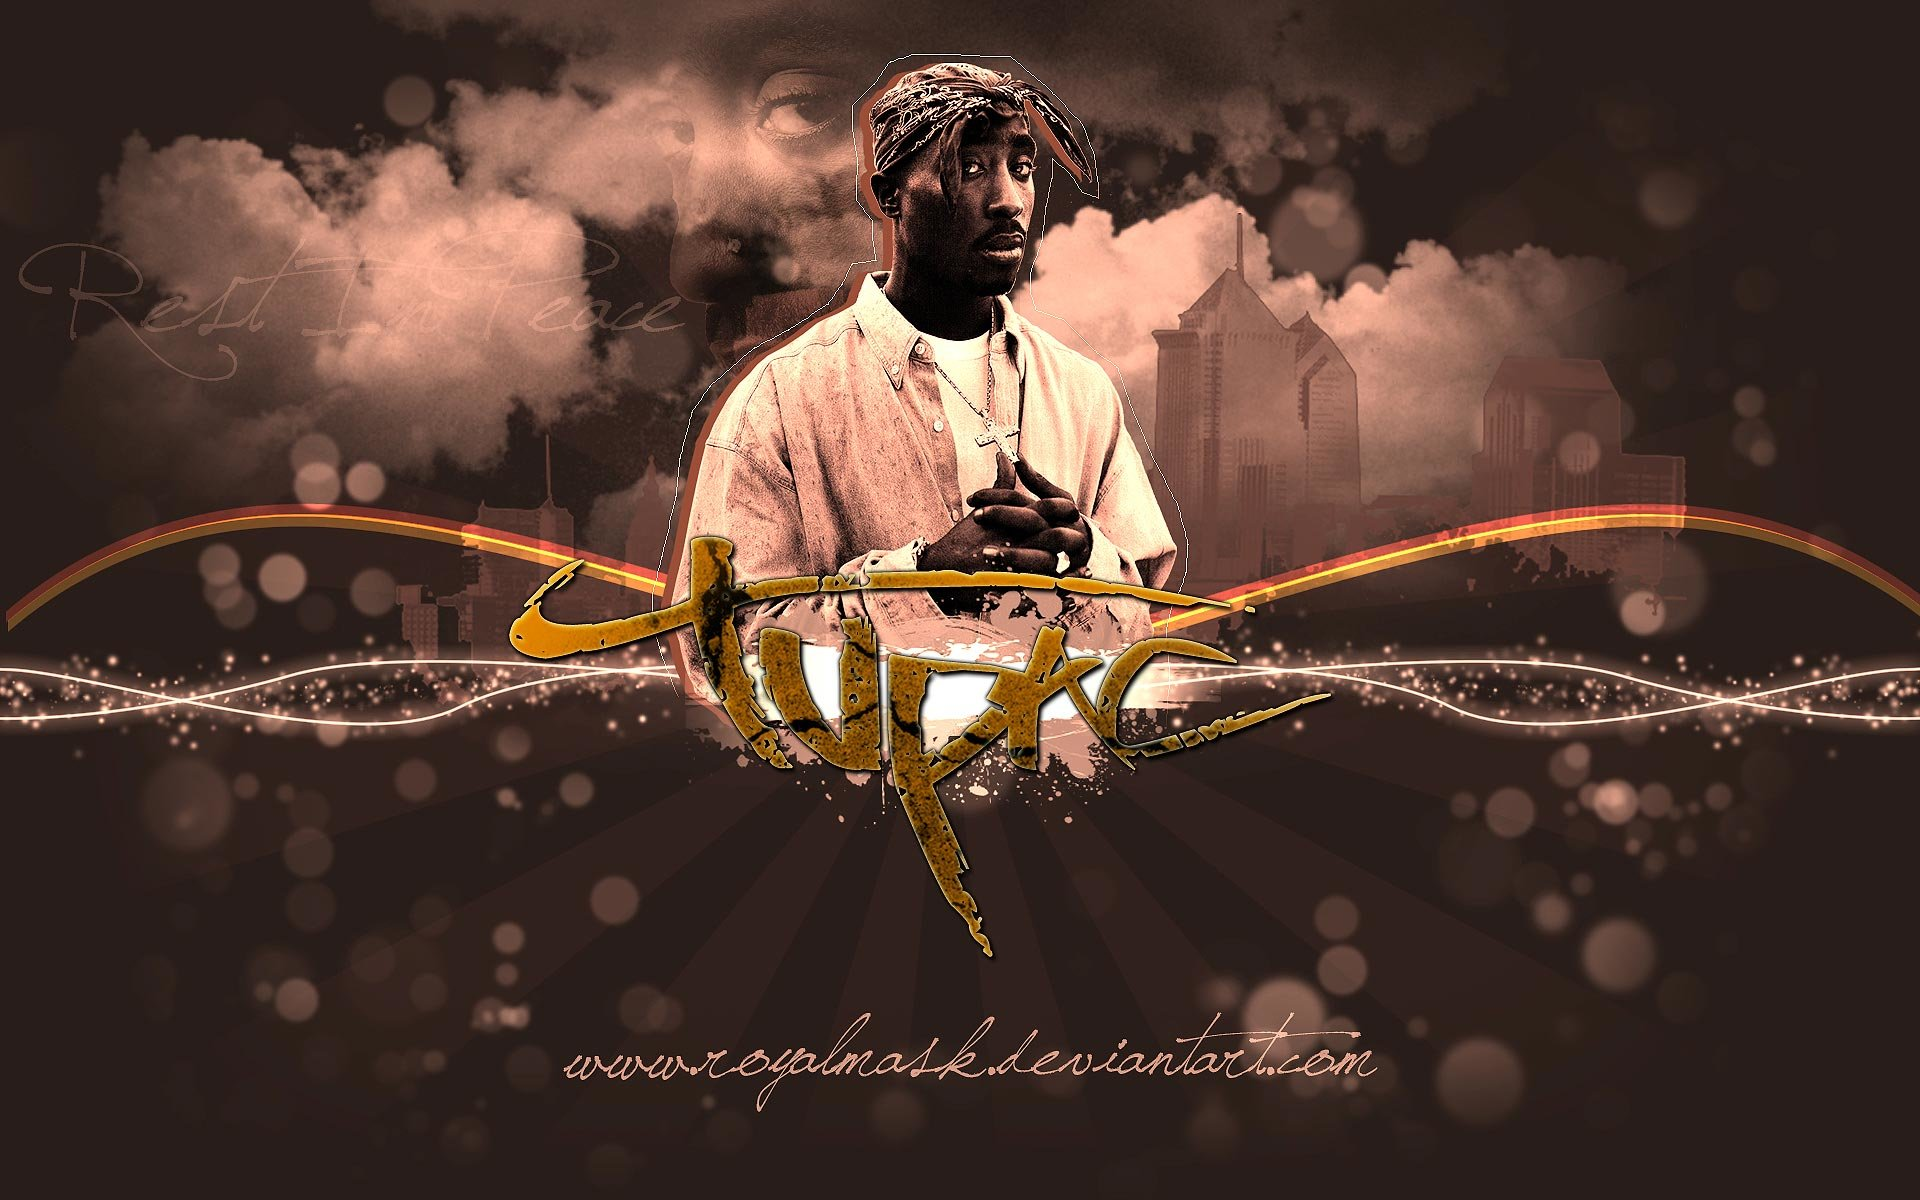 High resolution 2pac (tupac) hd 1920x1200 wallpaper ID:259147 for PC